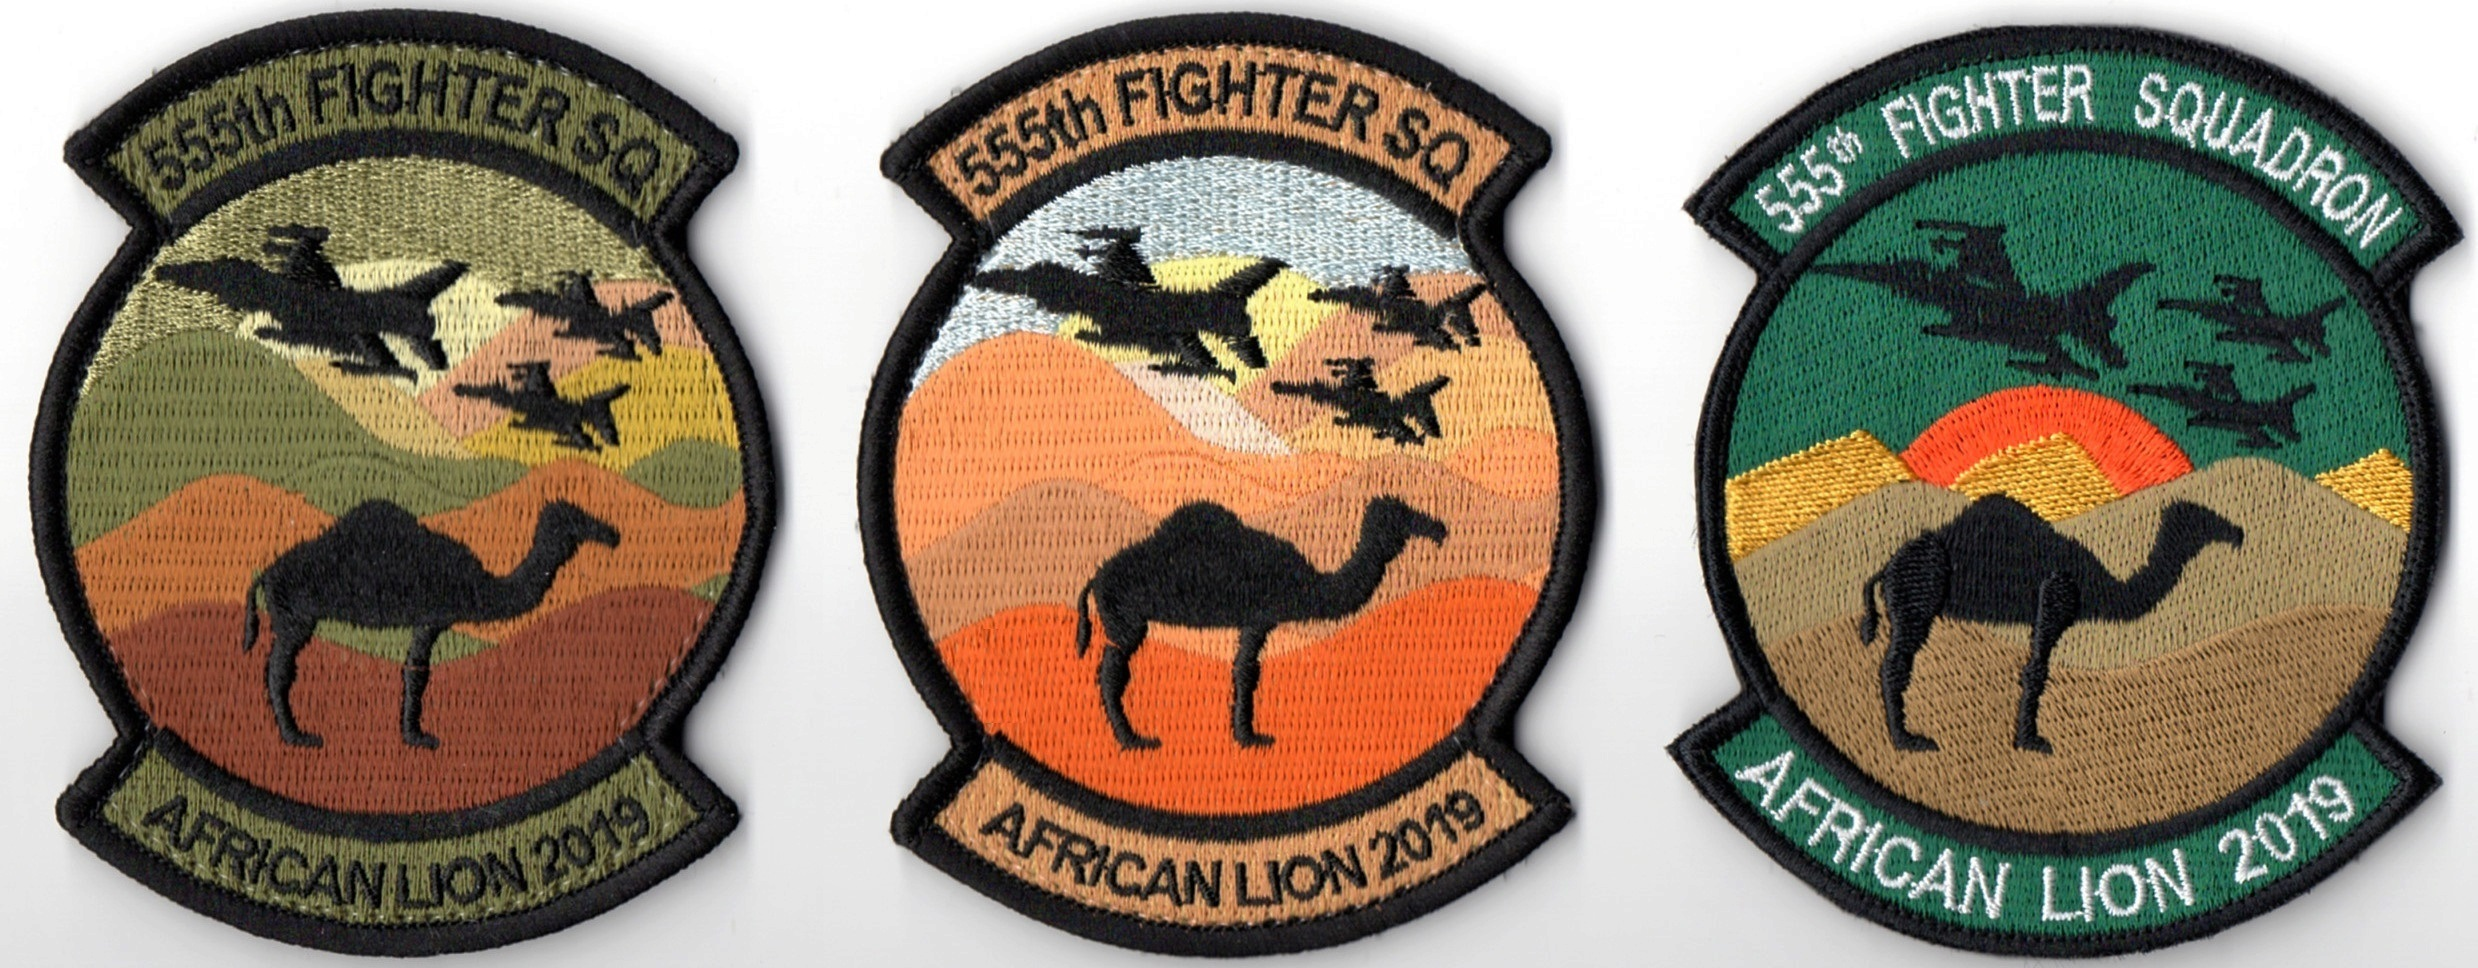 RMAF insignia Swirls Patches / Ecussons,cocardes et Insignes Des FRA - Page 8 555th_10